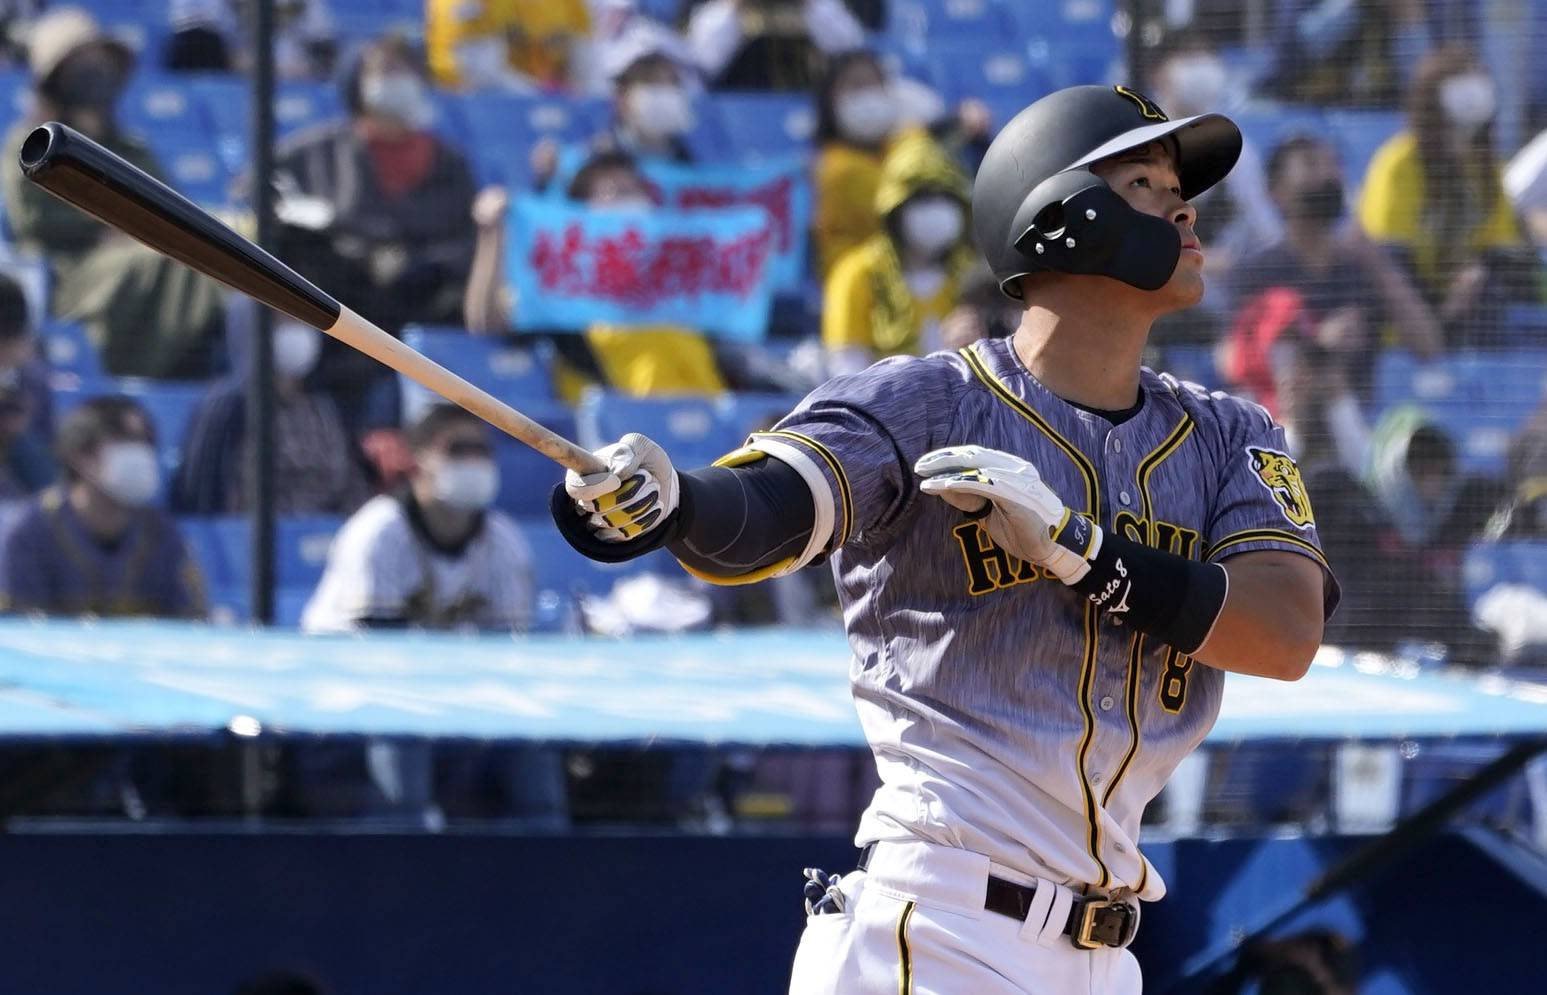 The Tigers' Teruaki Sato homers against the Swallows during the fourth inning at Jingu Stadium on March 16. | KYODO